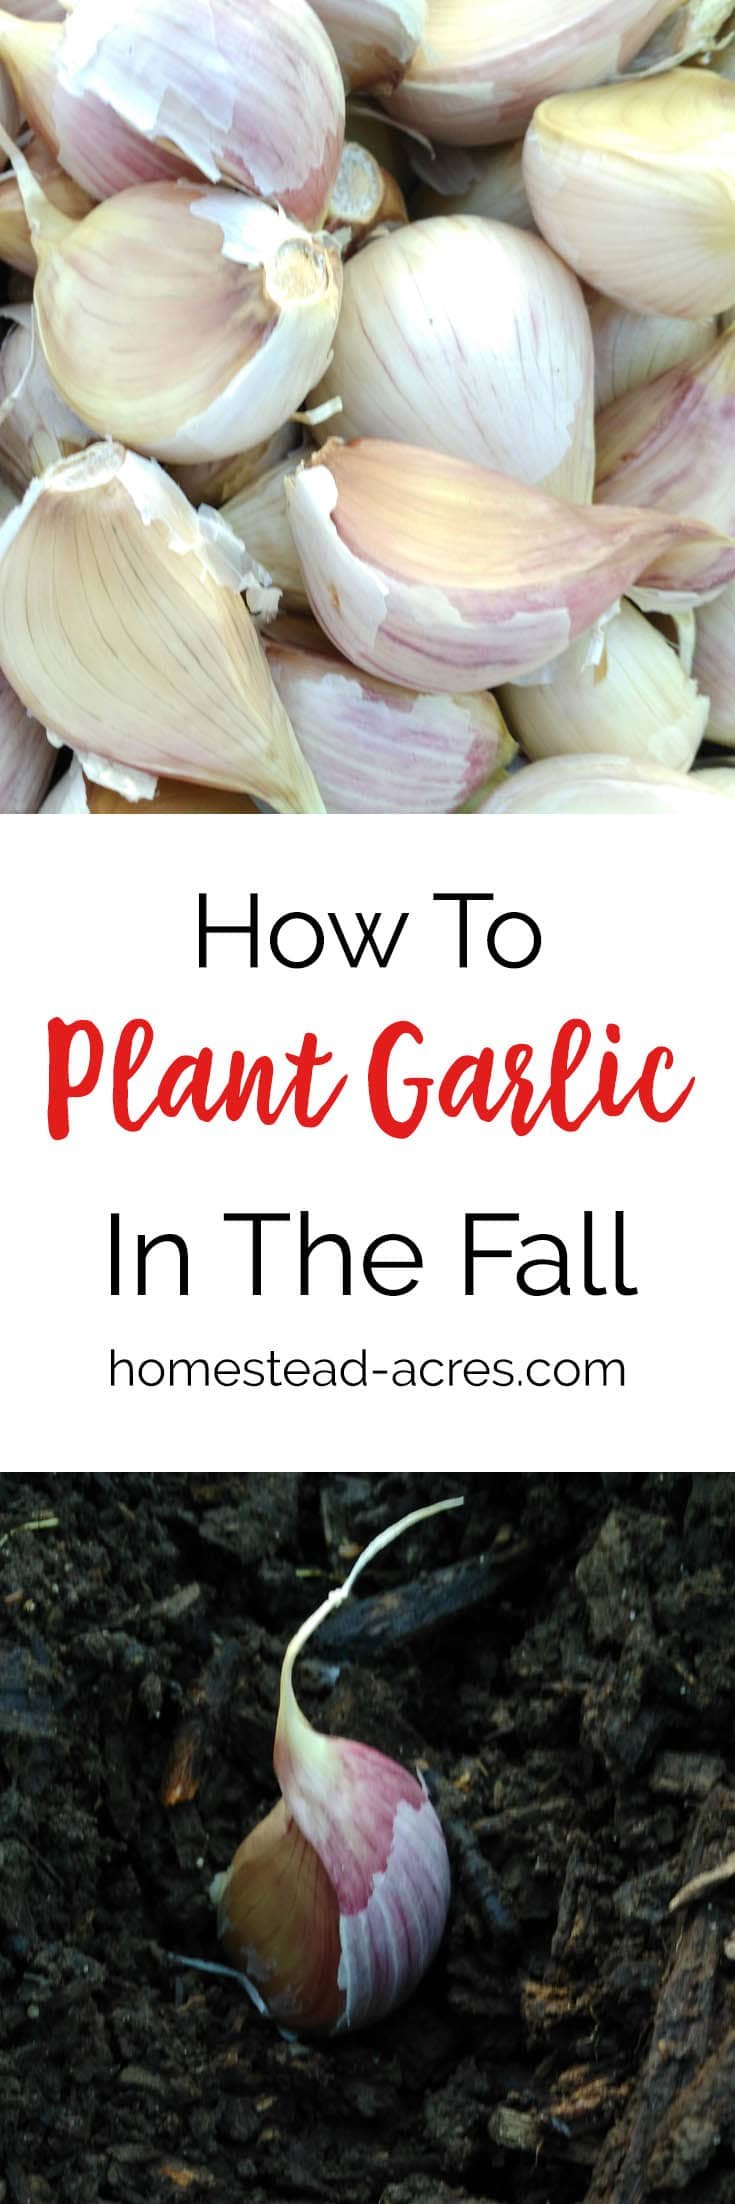 Growing Garlic. How to plant garlic in the fall. Garlic is a must have kitchen staple in our home! Growing garlic is so easy to do and doesn't need a lot of space. Click here to see how to grow your own garlic. #growinggarlic #gardening #garlic #plantinggarlic